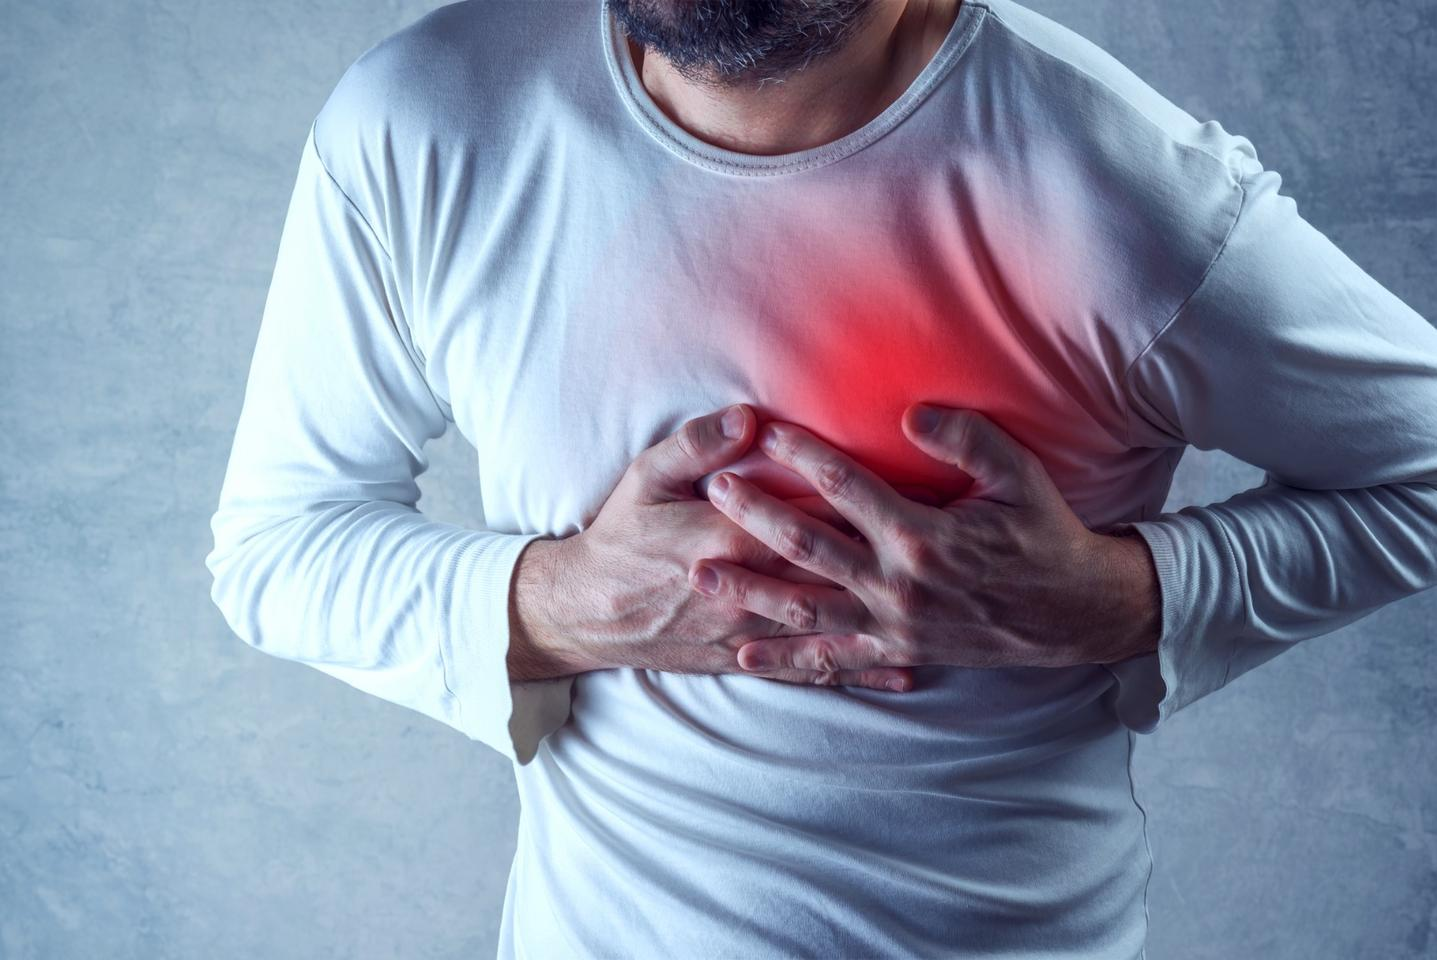 When it comes to recovering from a heart attack, minutes matter